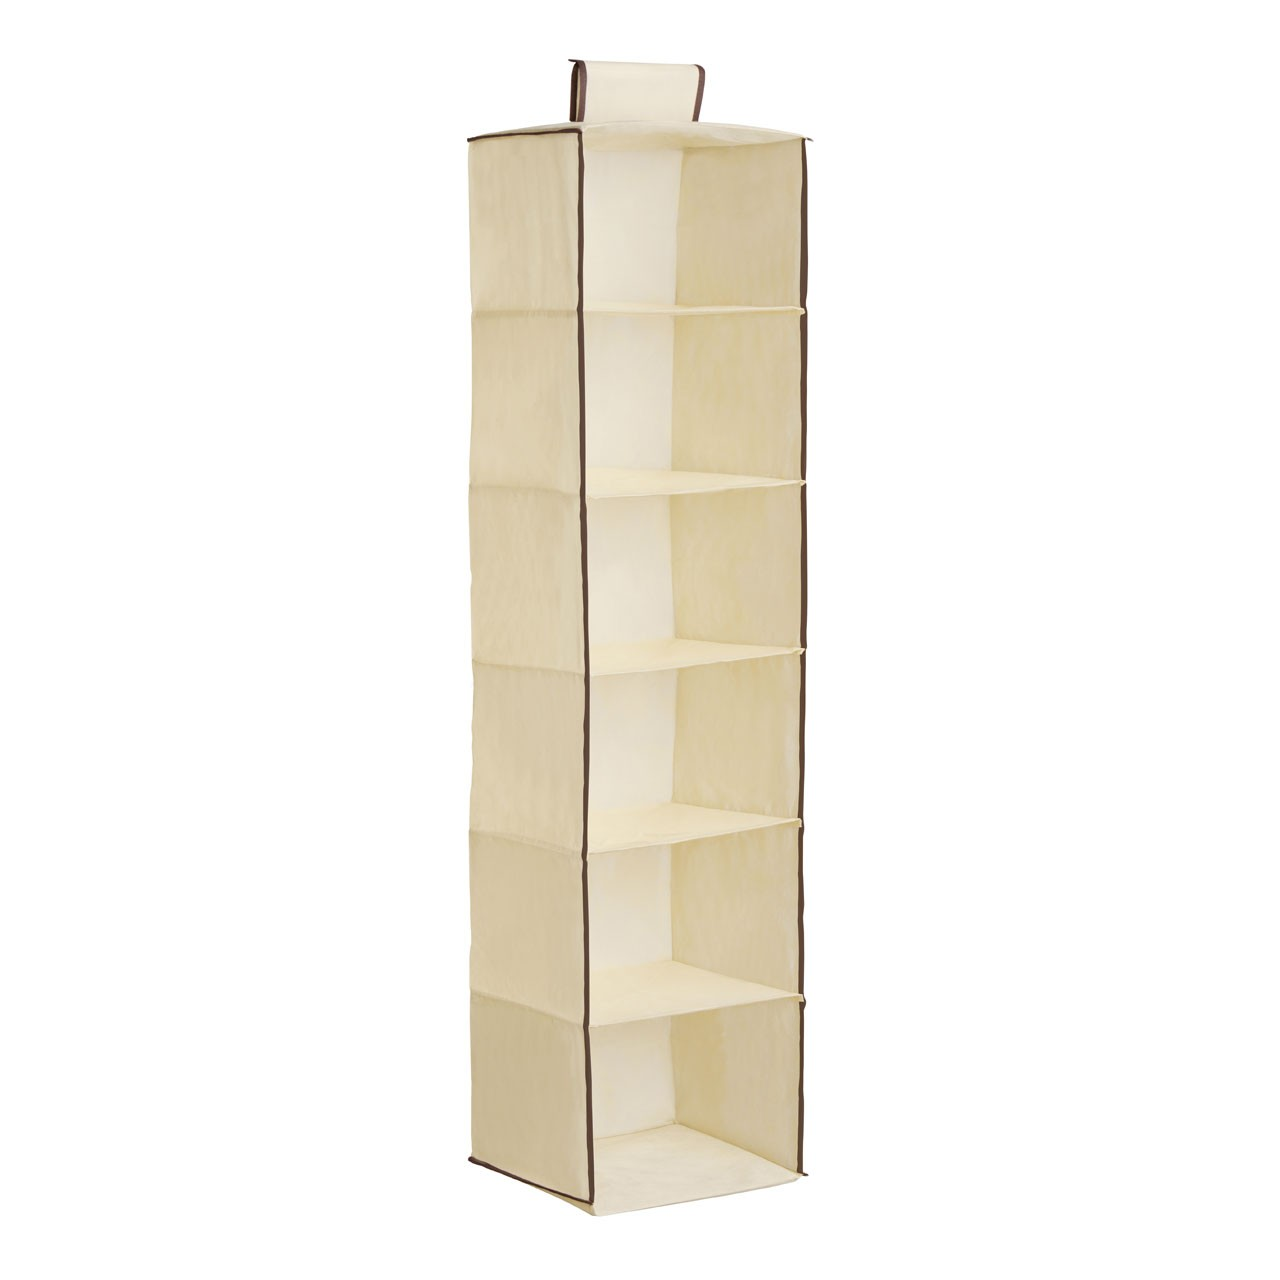 6-Section Hanging Garment Organiser - Cream